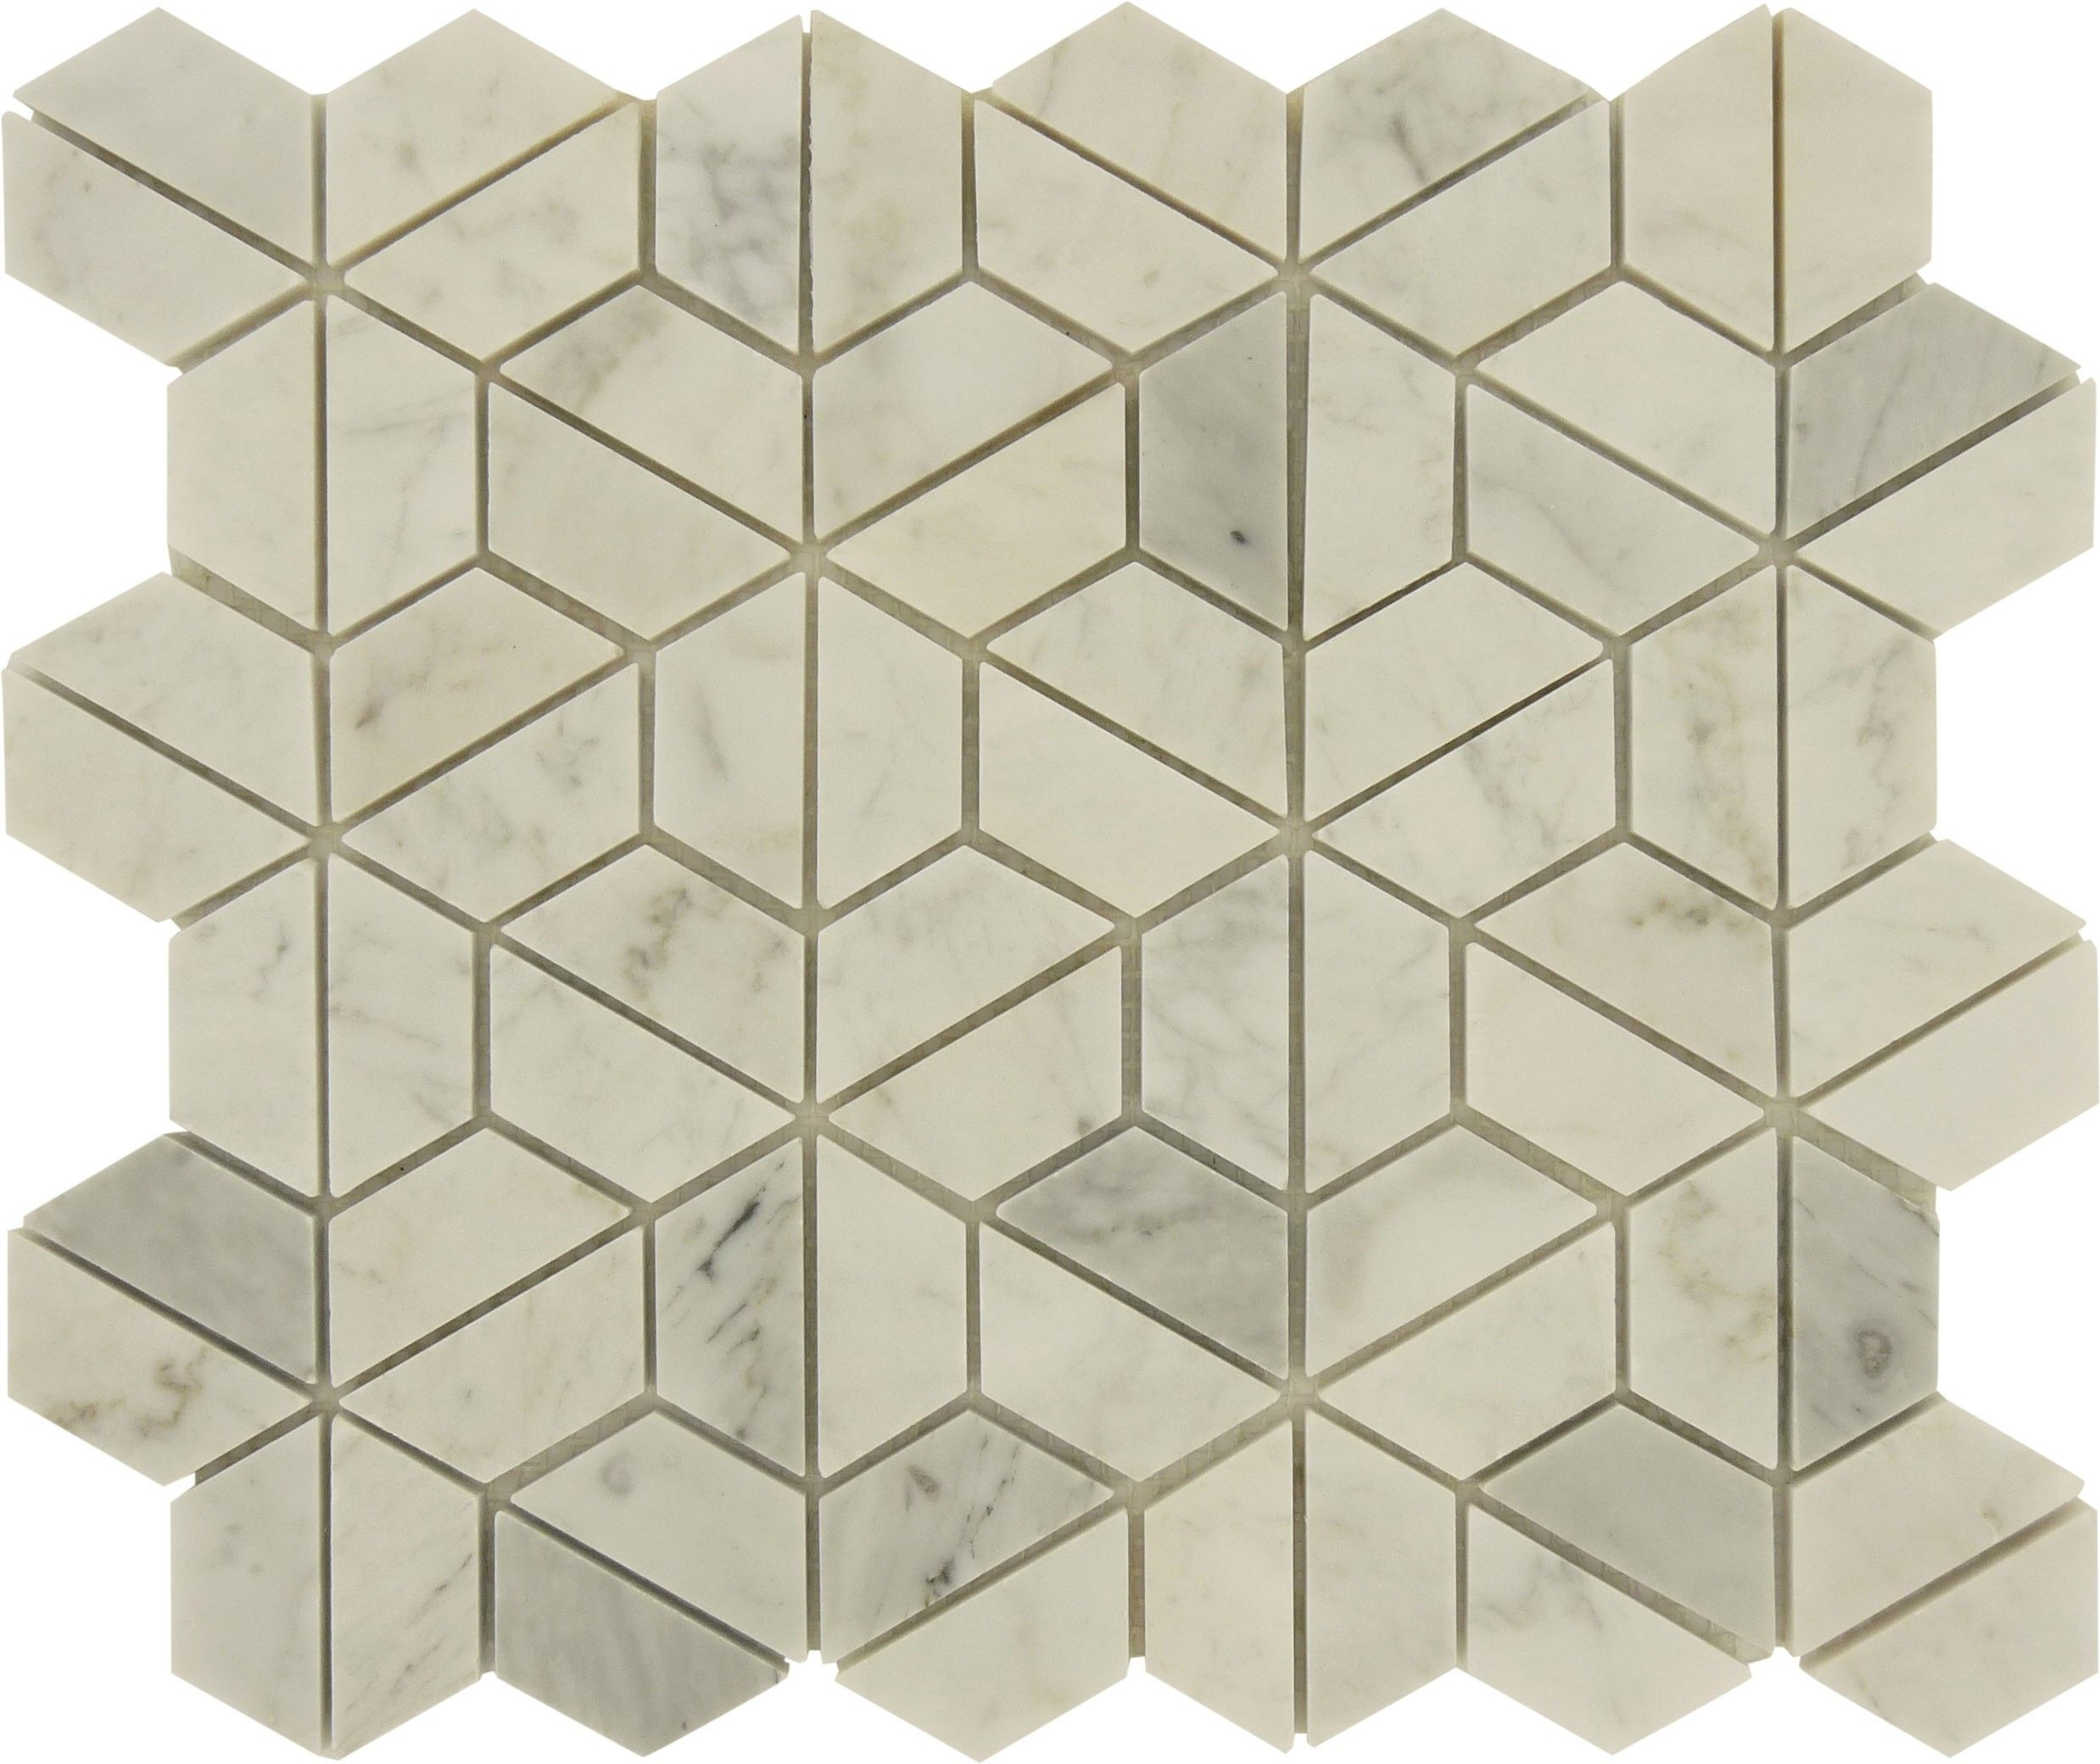 Sheet Size 10 1 4 X 11 3 4 Tile Size Variable Tile Thickness 1 4 Nominal Grout Joints 1 8 Shee Stone Tiles Tile Installation Polished Stone